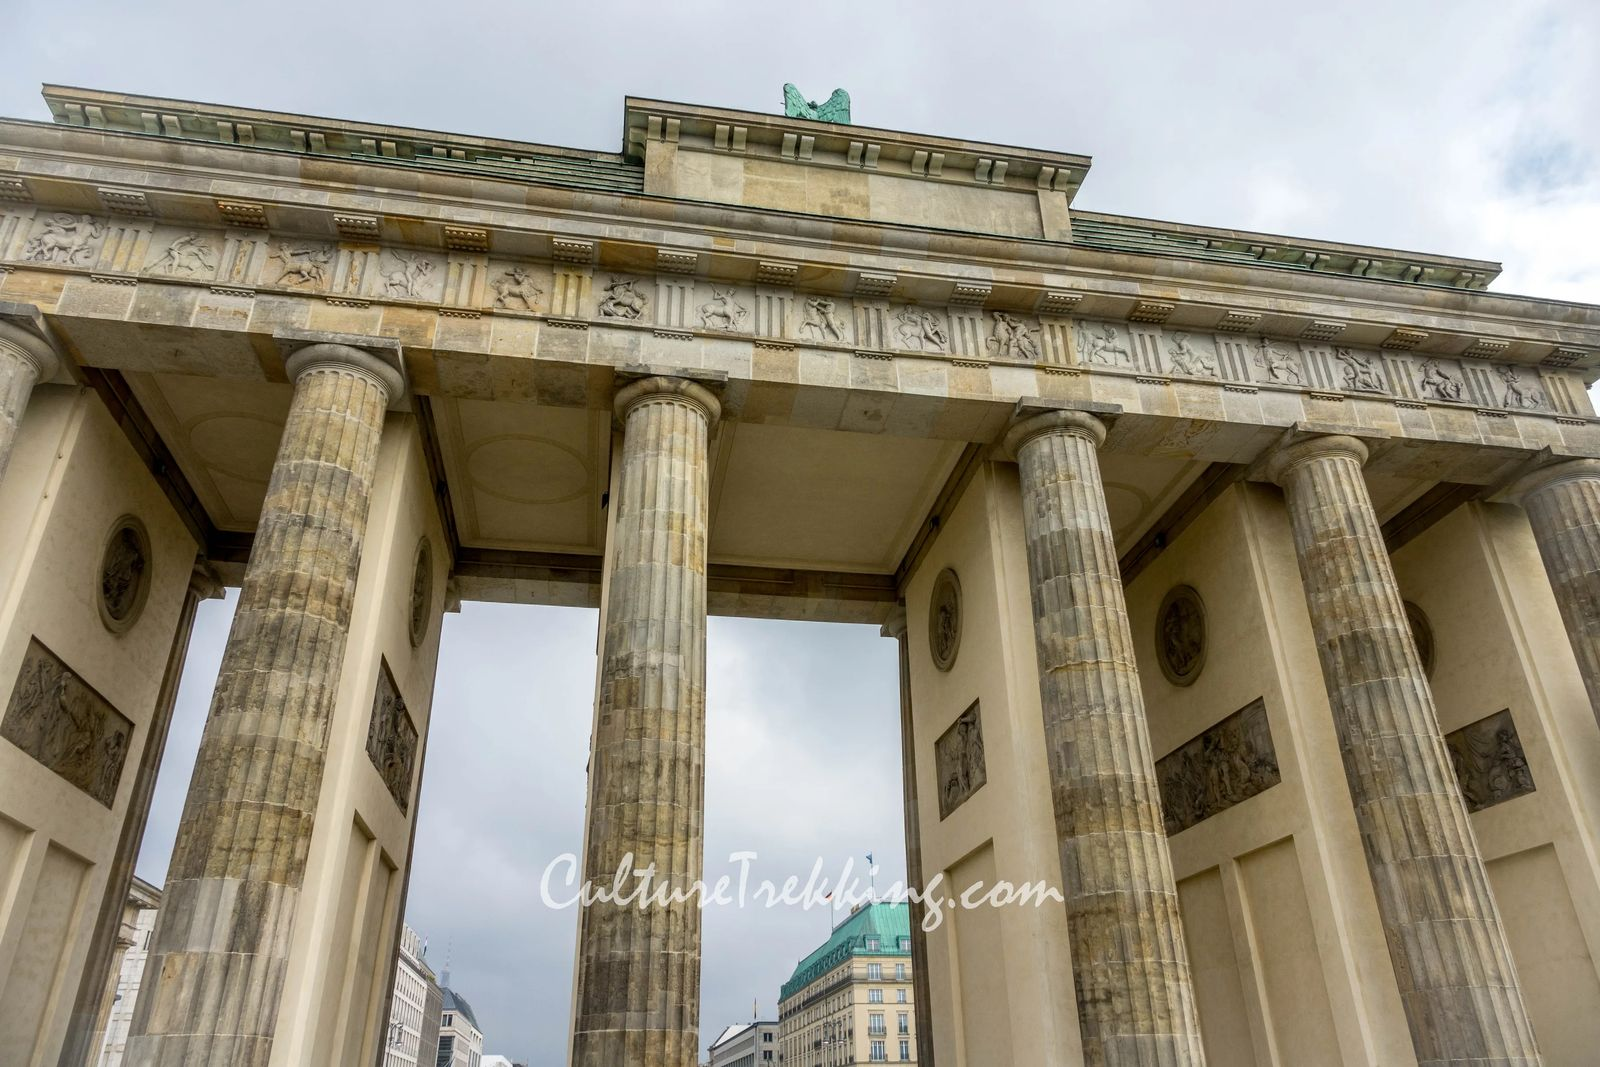 backpacking Eastern Europe 12 hours in berlin and what to see. Here is the Brandenburg Gate